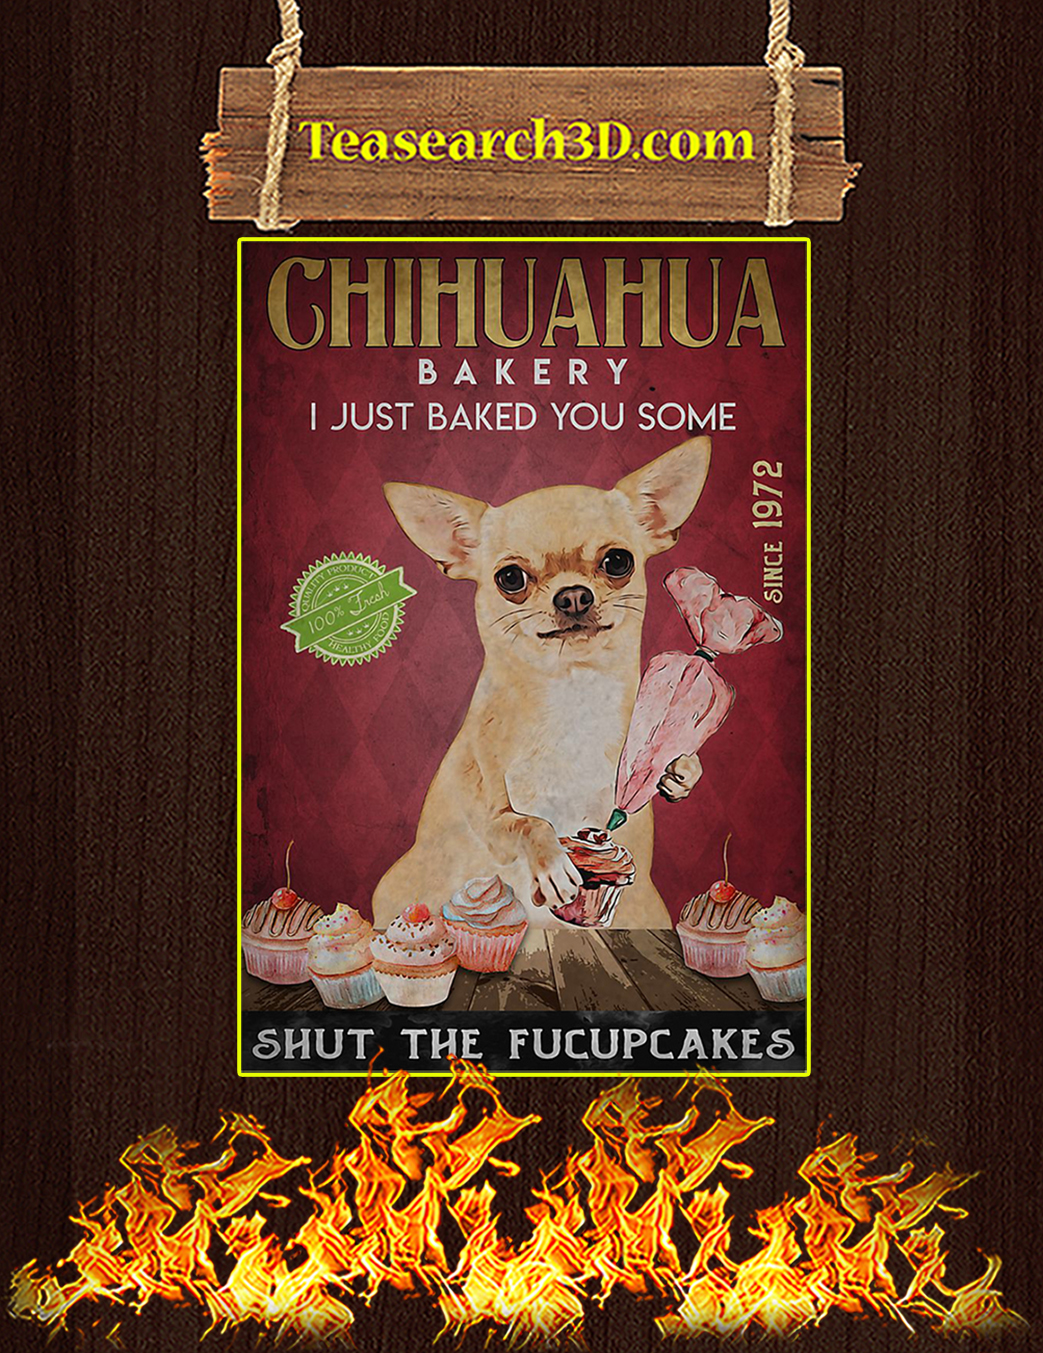 Chihuahua bakery I just baked you some poster A1